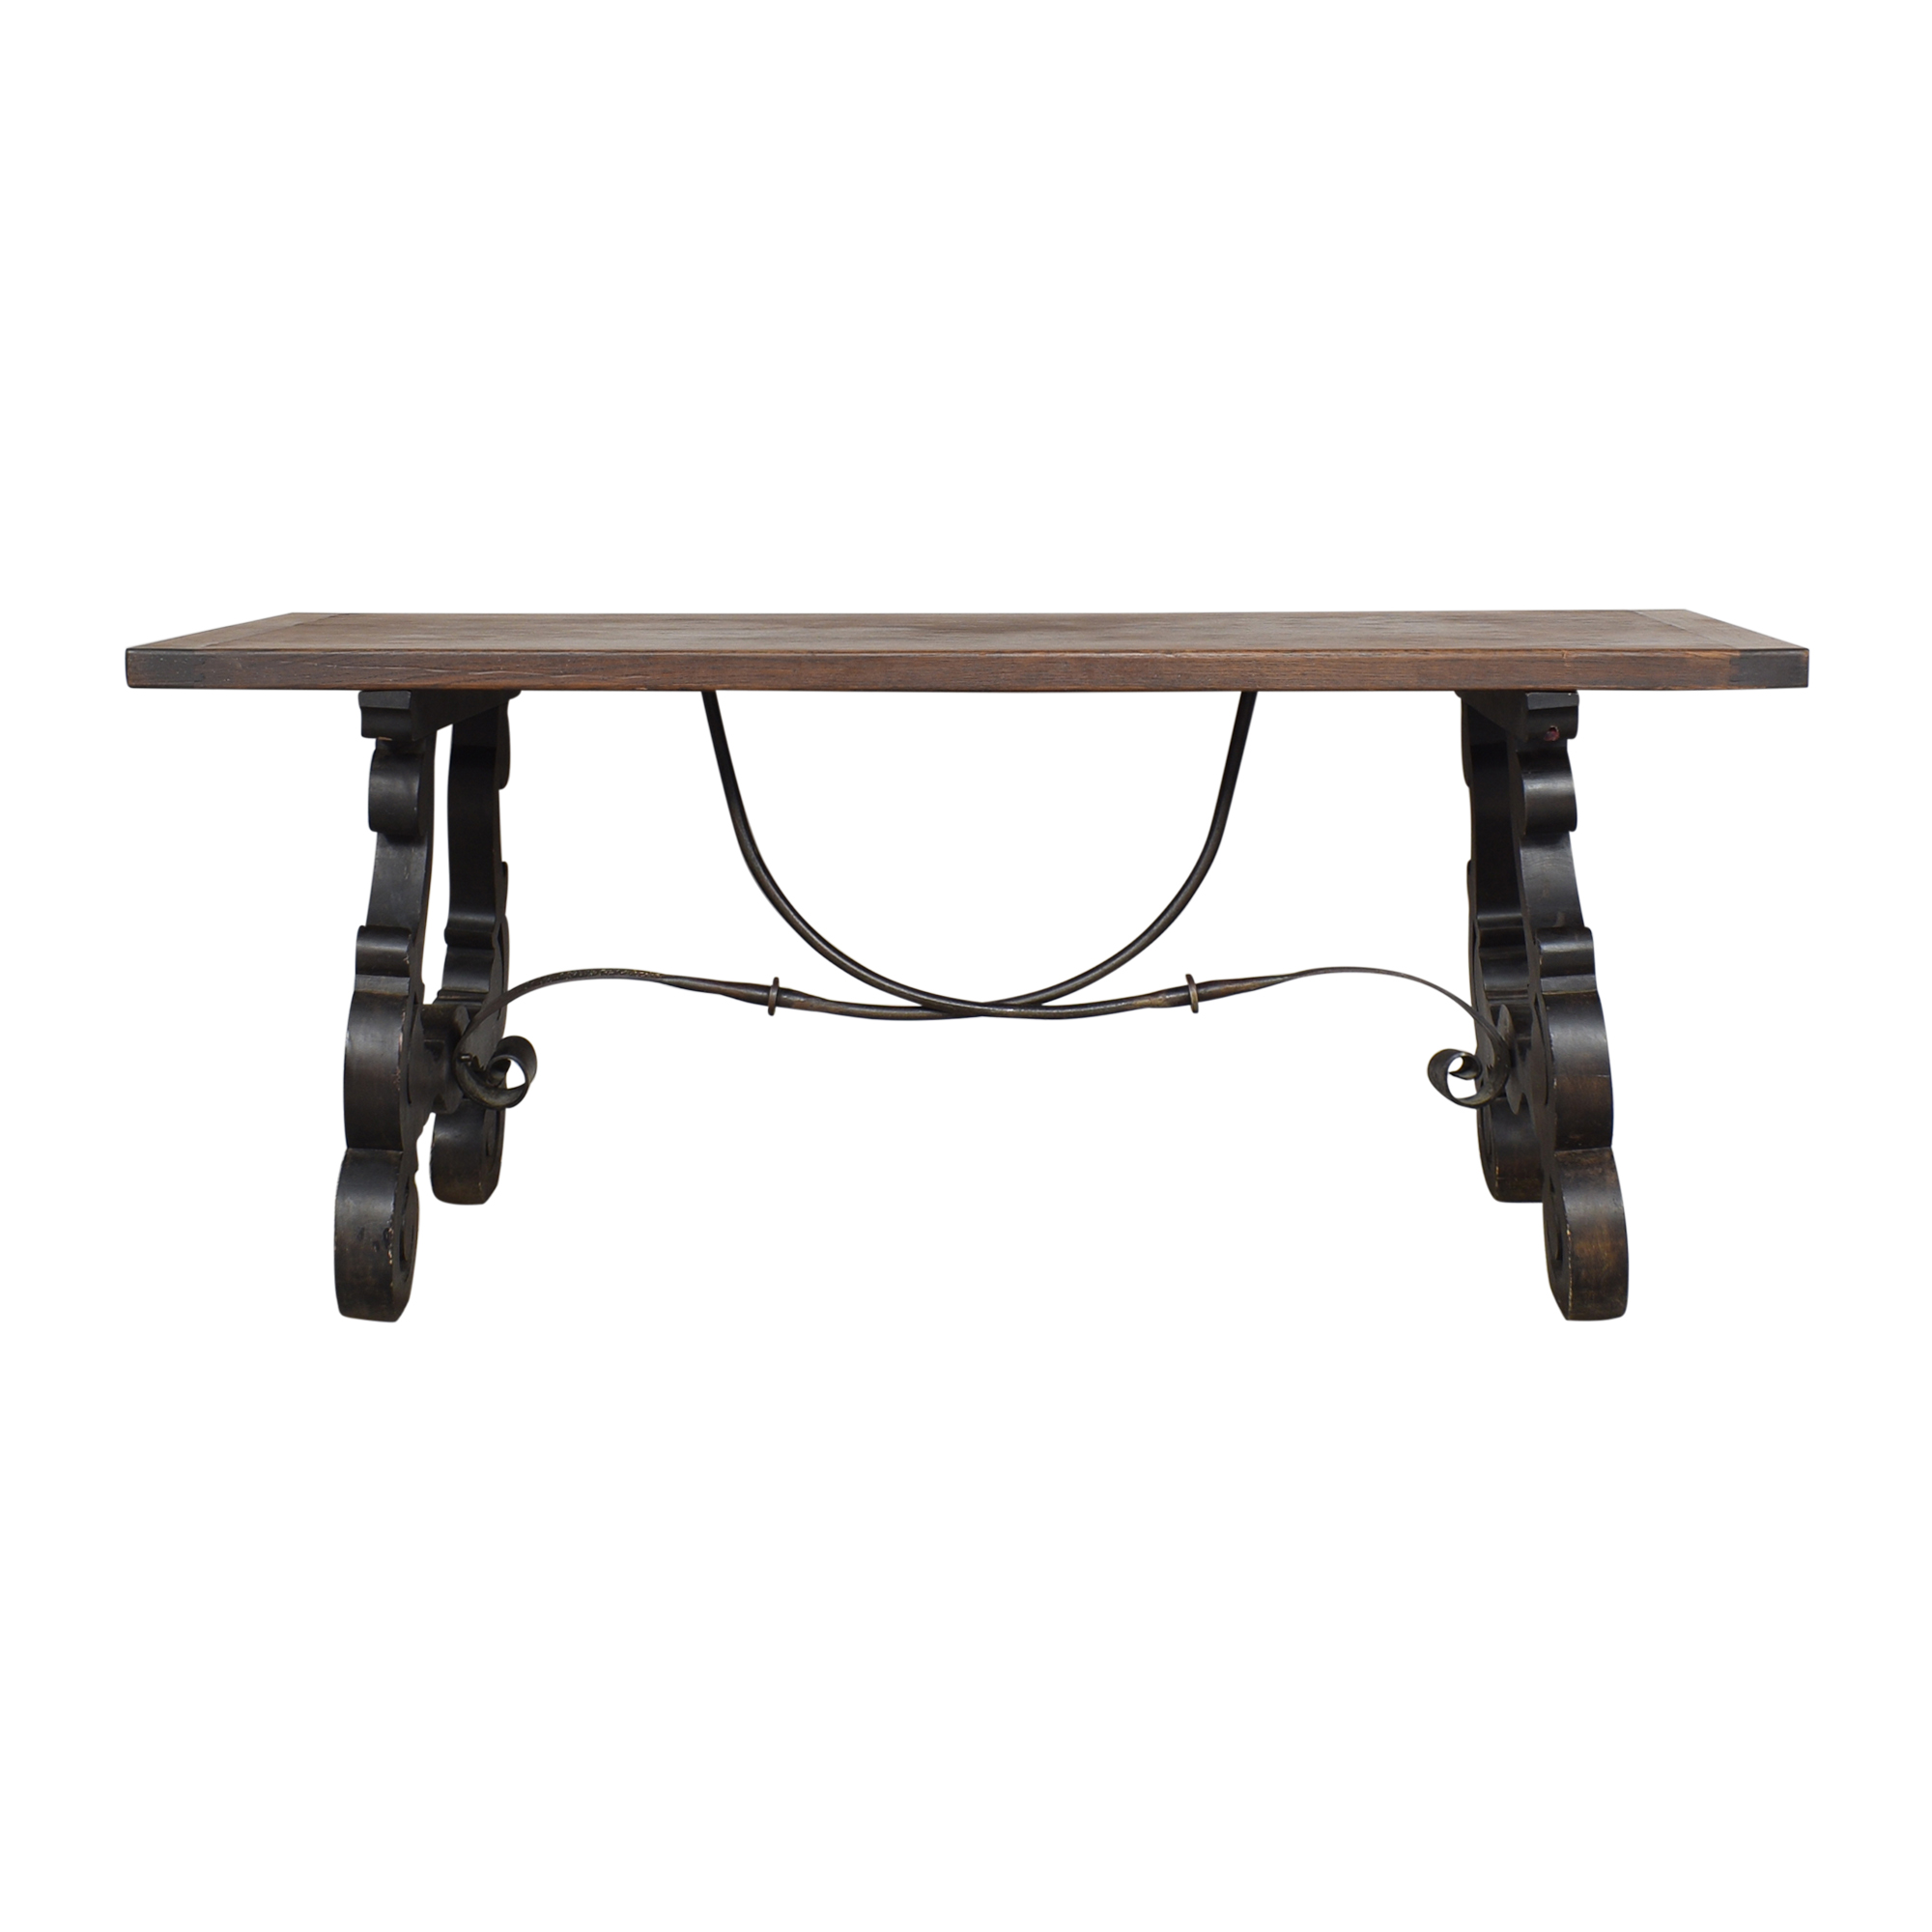 buy ABC Carpet & Home Dining Table ABC Carpet & Home Dinner Tables